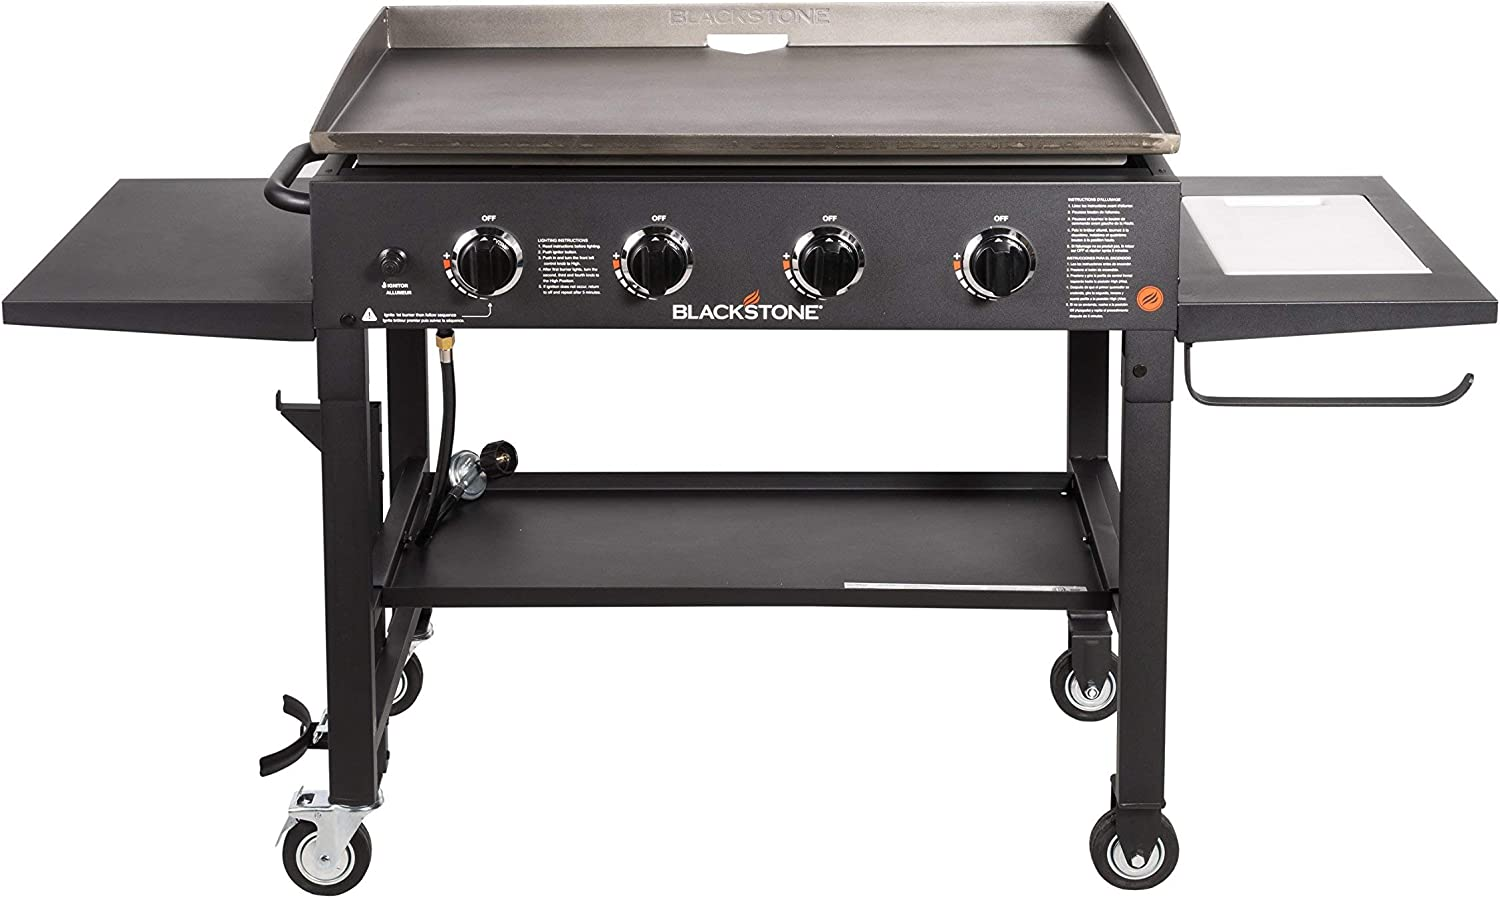 "The Blackstone 36"" Outdoor Flat Top Gas Grill Griddle Station"